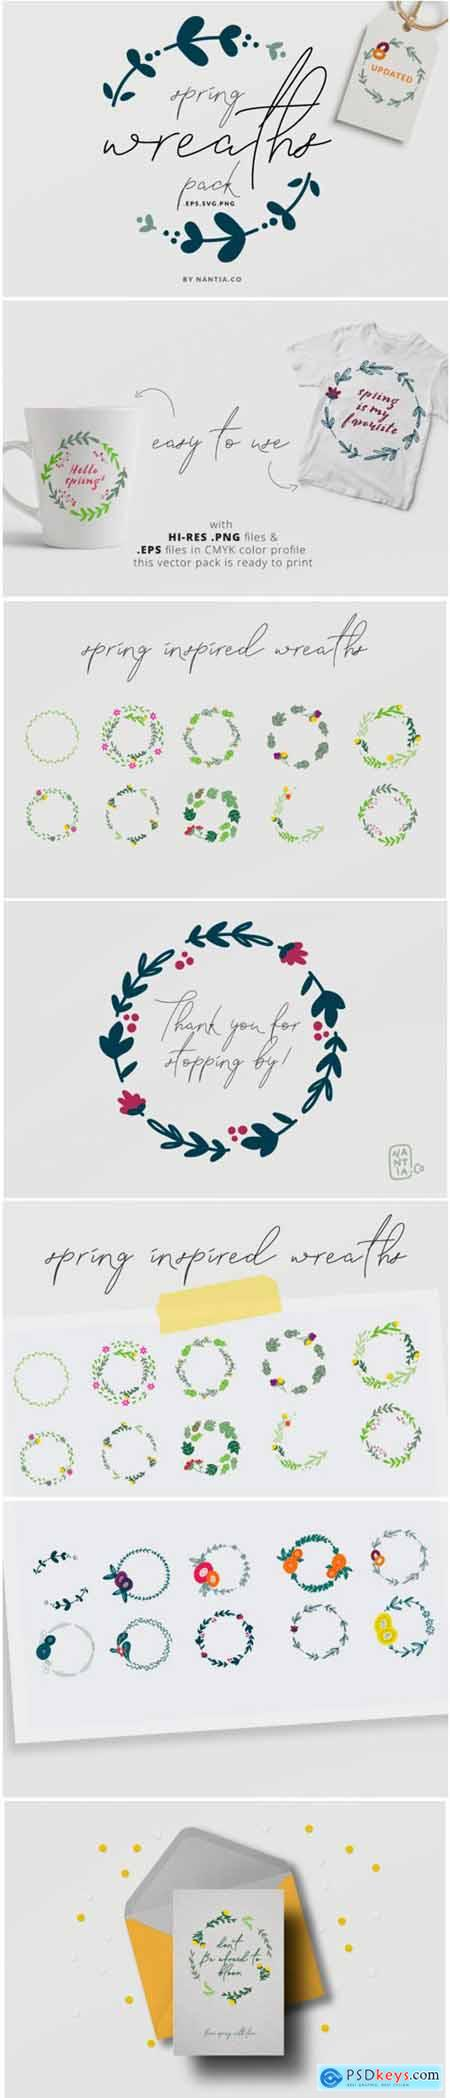 Spring Wreaths Vector Pack 1761512